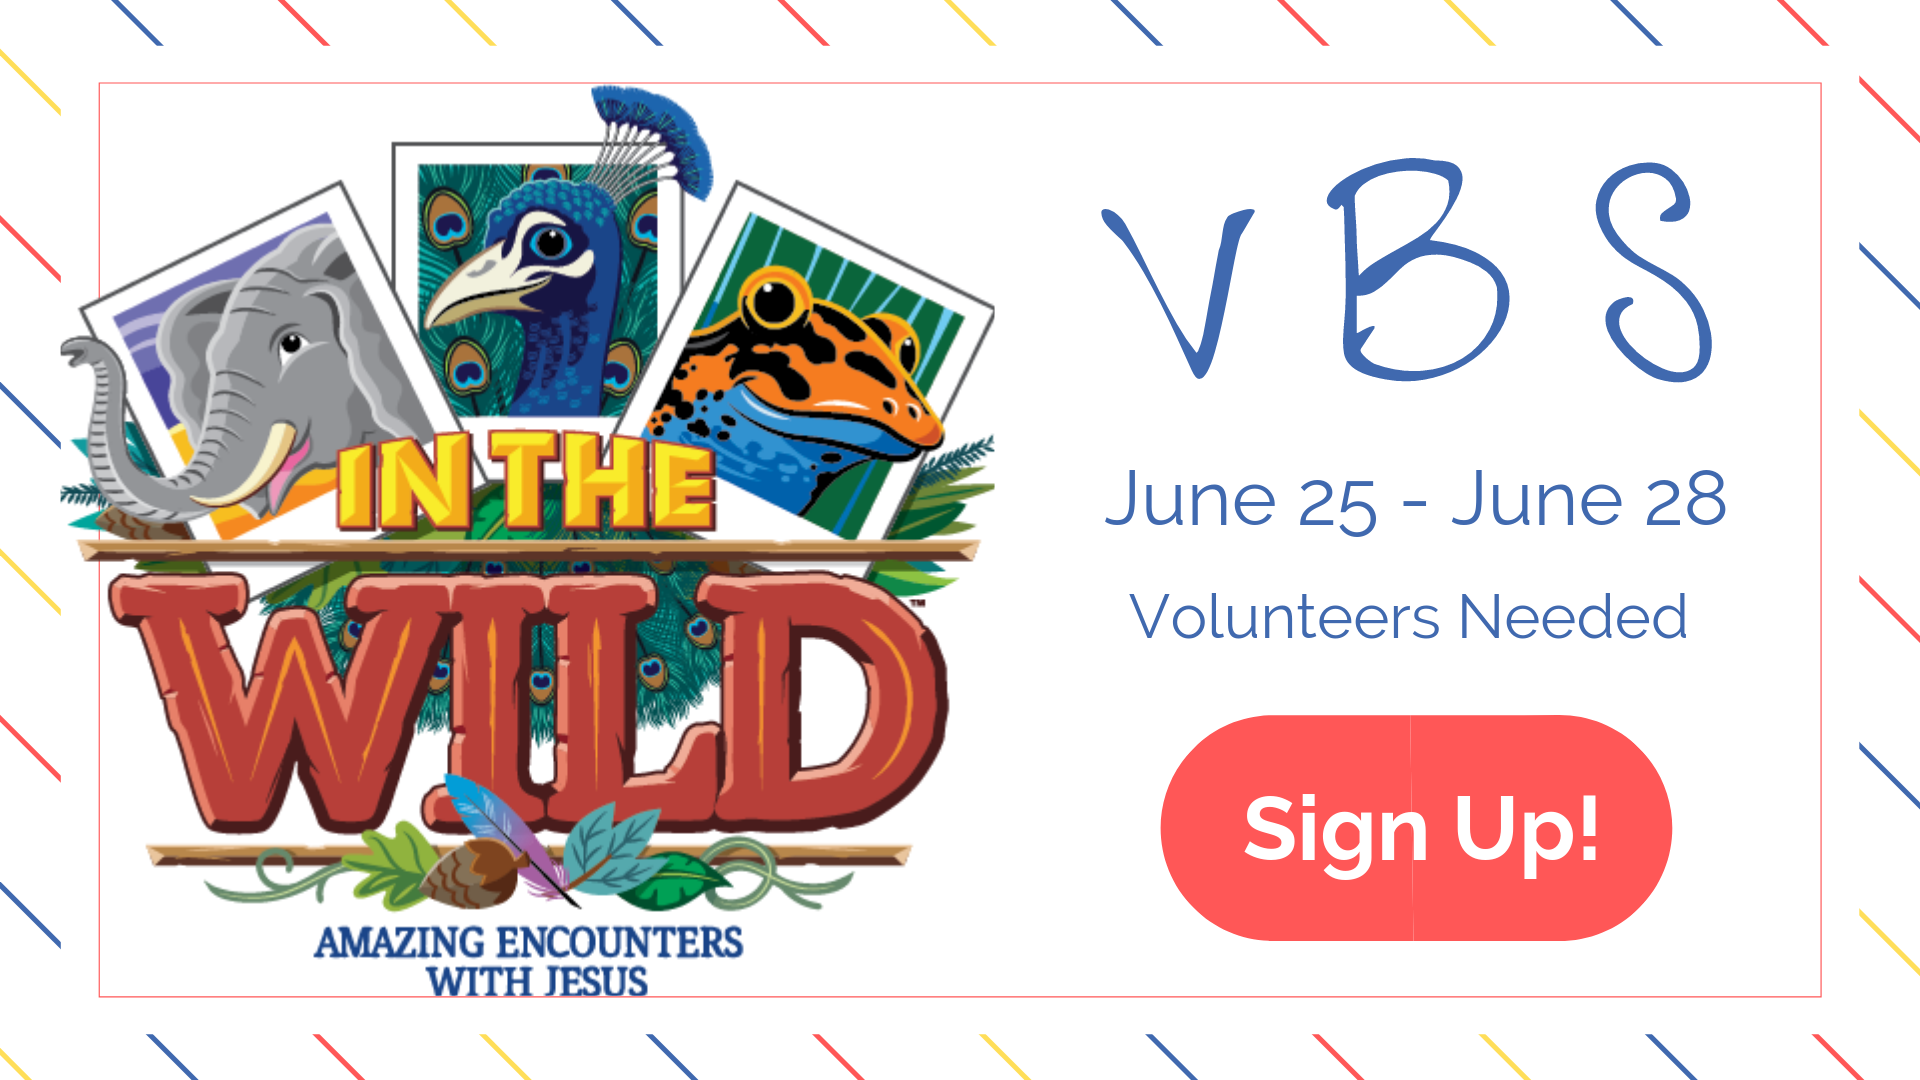 VBS Web Banner.png